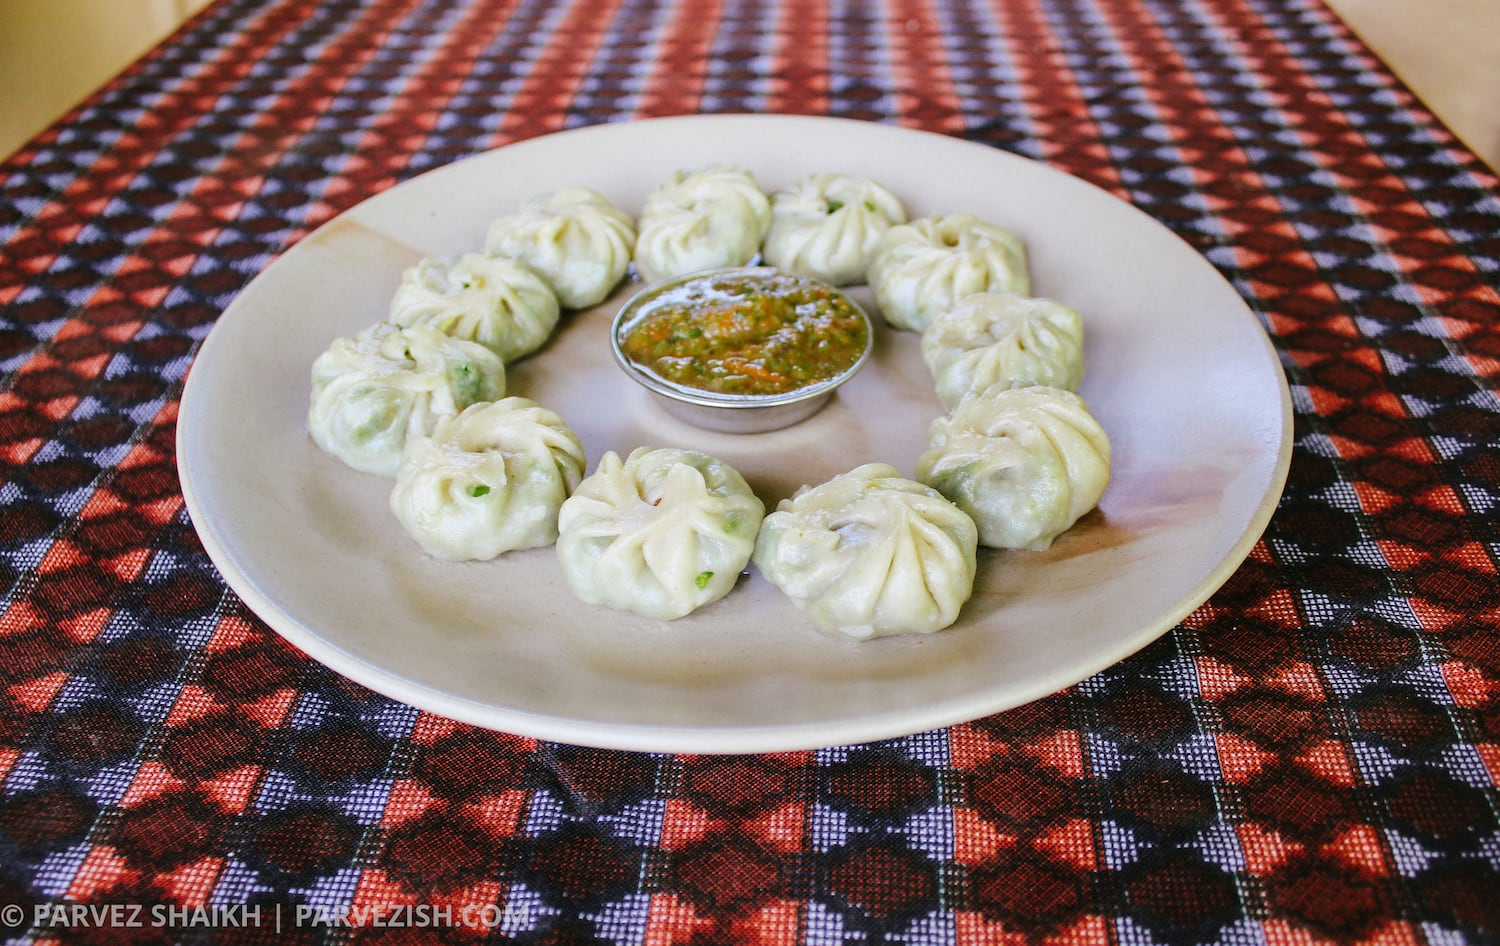 A Plate of Momos - Food to try in Bhutan